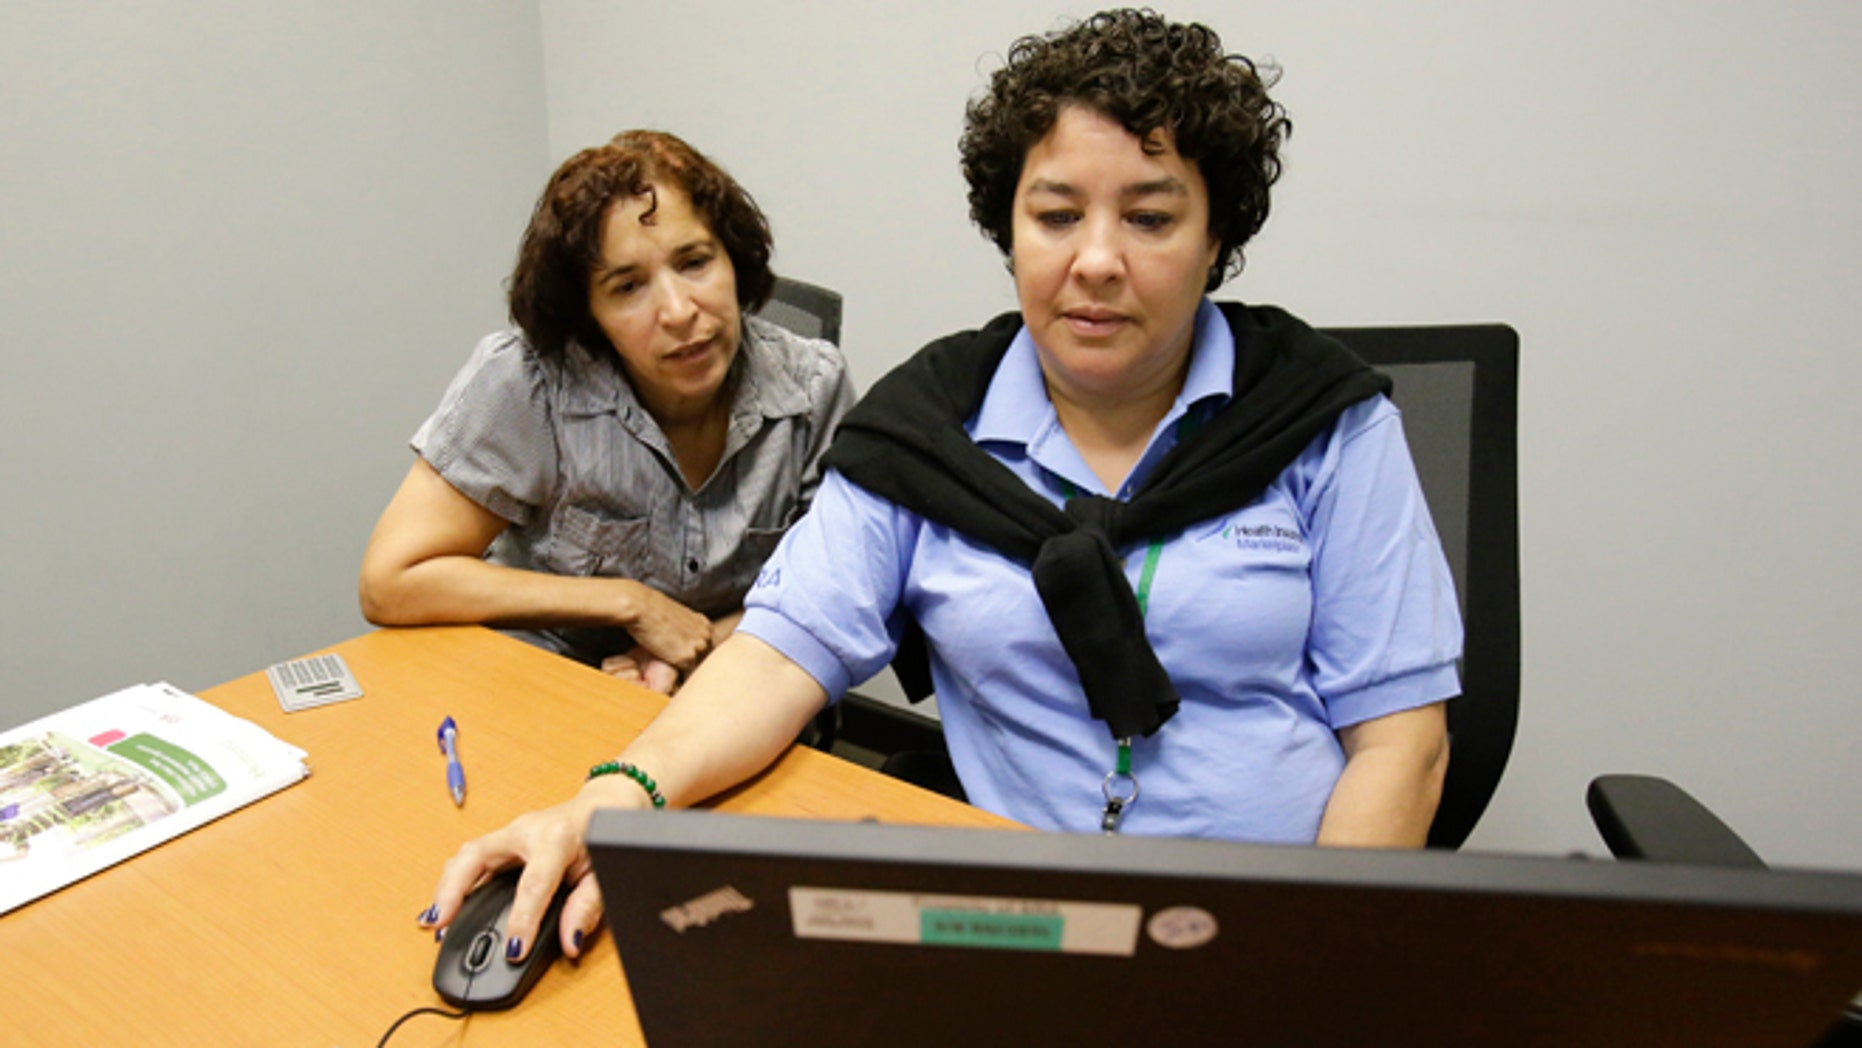 FILE - In this Nov. 17, 2014 file photo, Maria Arias, left, gets help from navigator Yvette Frias, as she signs up for the Affordable Care Act at the Orlando Enrollment Assistance Center, in Orlando, Fla. Florida has eclipsed California to become the state with the highest number of consumers buying health coverage through new insurance markets under the Affordable Care Act, according to federal statistics released Wednesday, Feb. 18, 2015. (AP Photo/John Raoux, File)